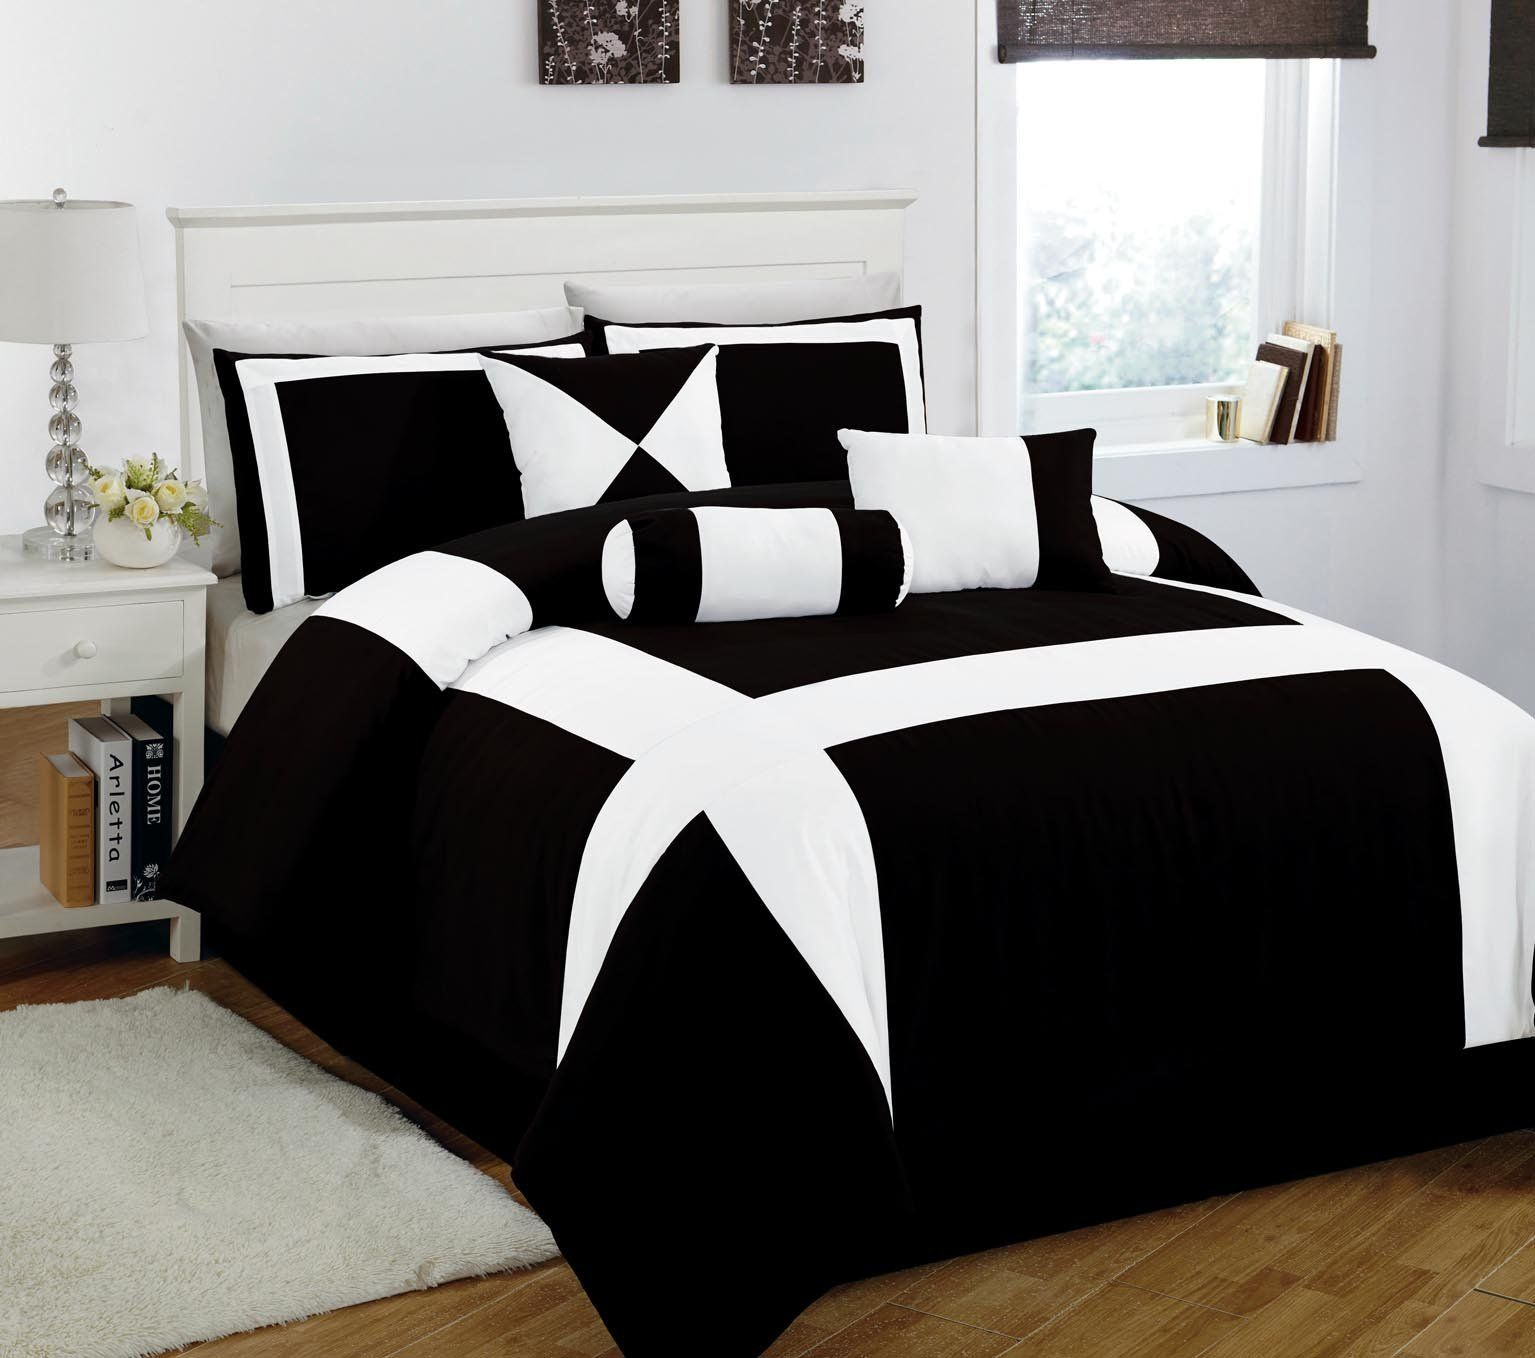 11 piece king jefferson black and white bed in a bag w 600tc cotton sheet setamazonhome kitchen